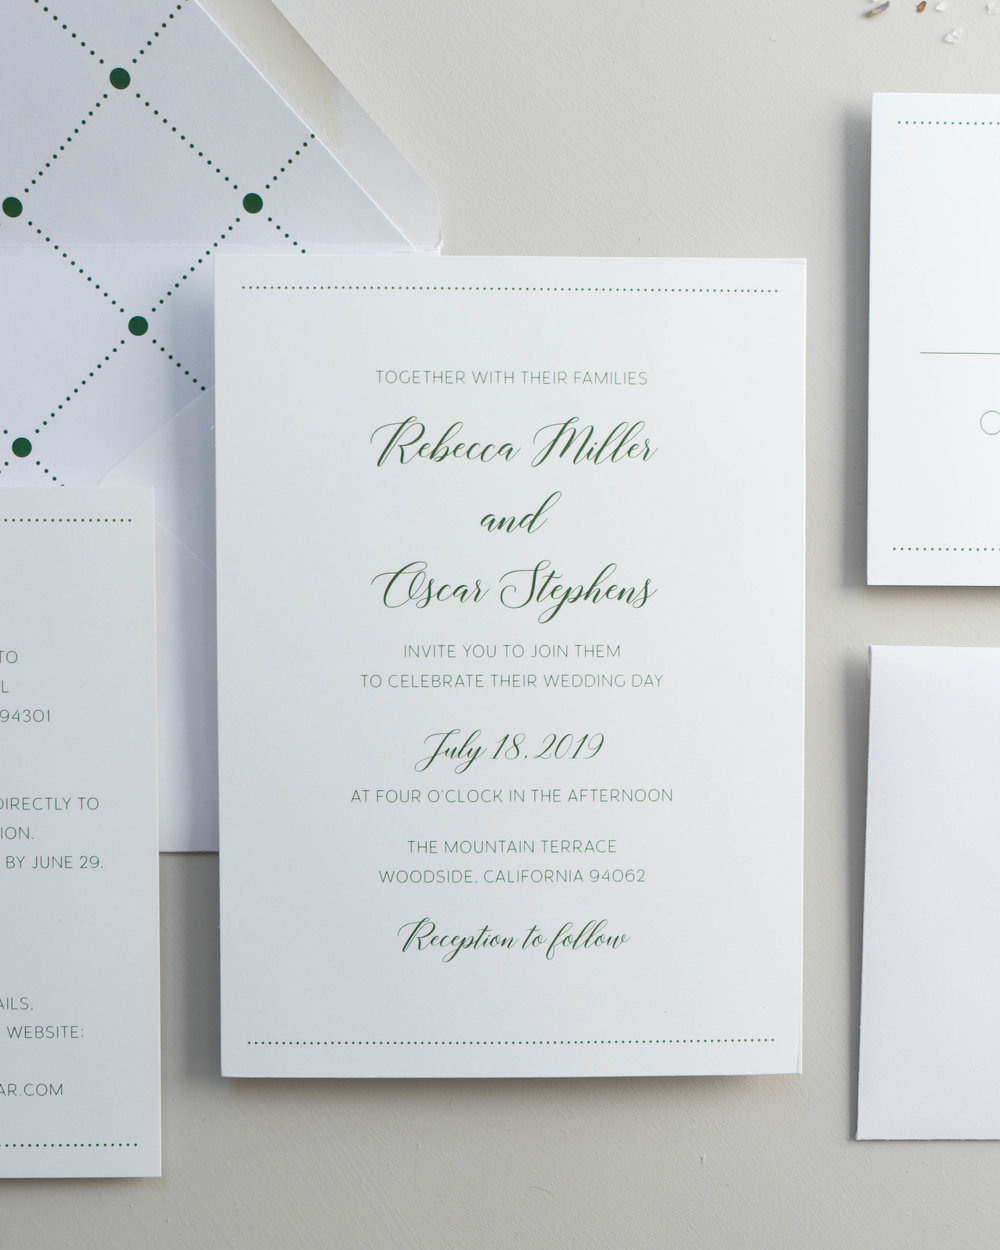 Simple Green Wedding Invitation by Just Jurf-01342.jpg